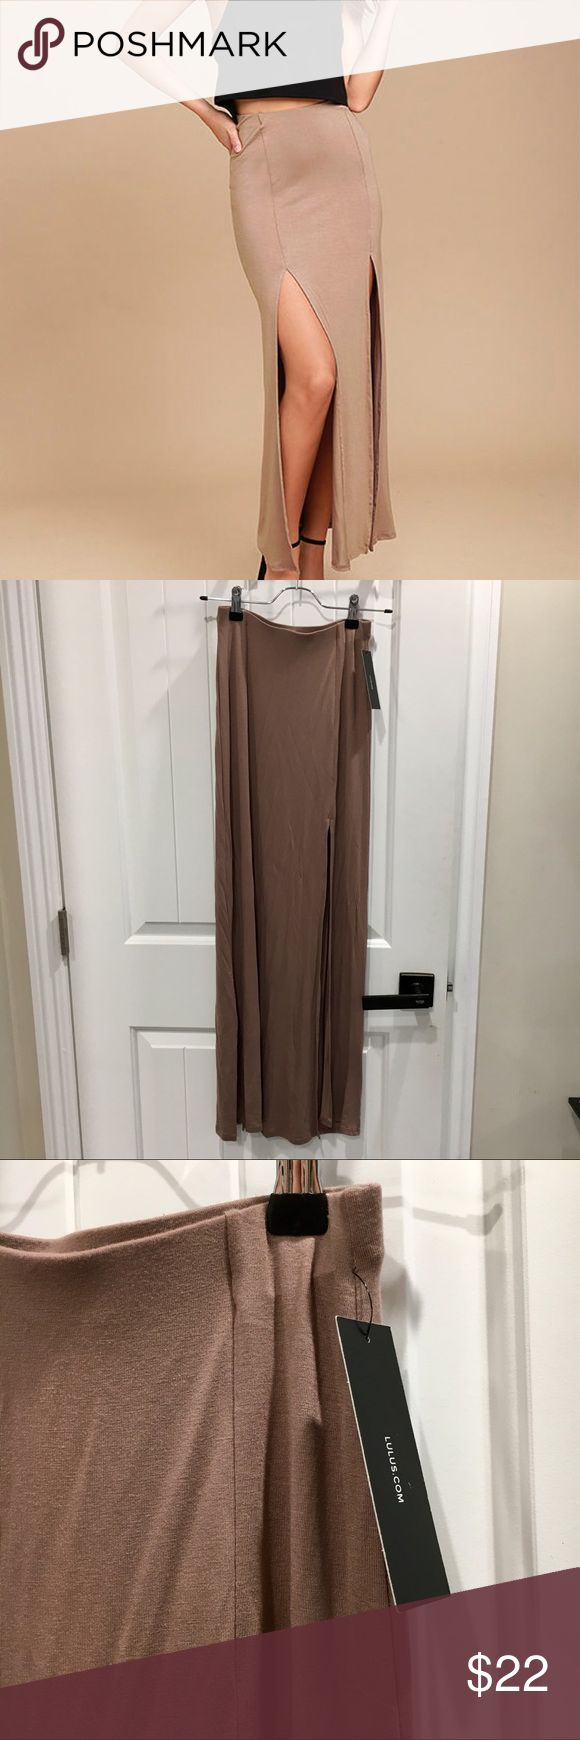 NWT Lulu's maxi skirt Actual color is between stock photo and original photo. Currently selling for $36 on Lulu's site Lulu's Skirts Maxi